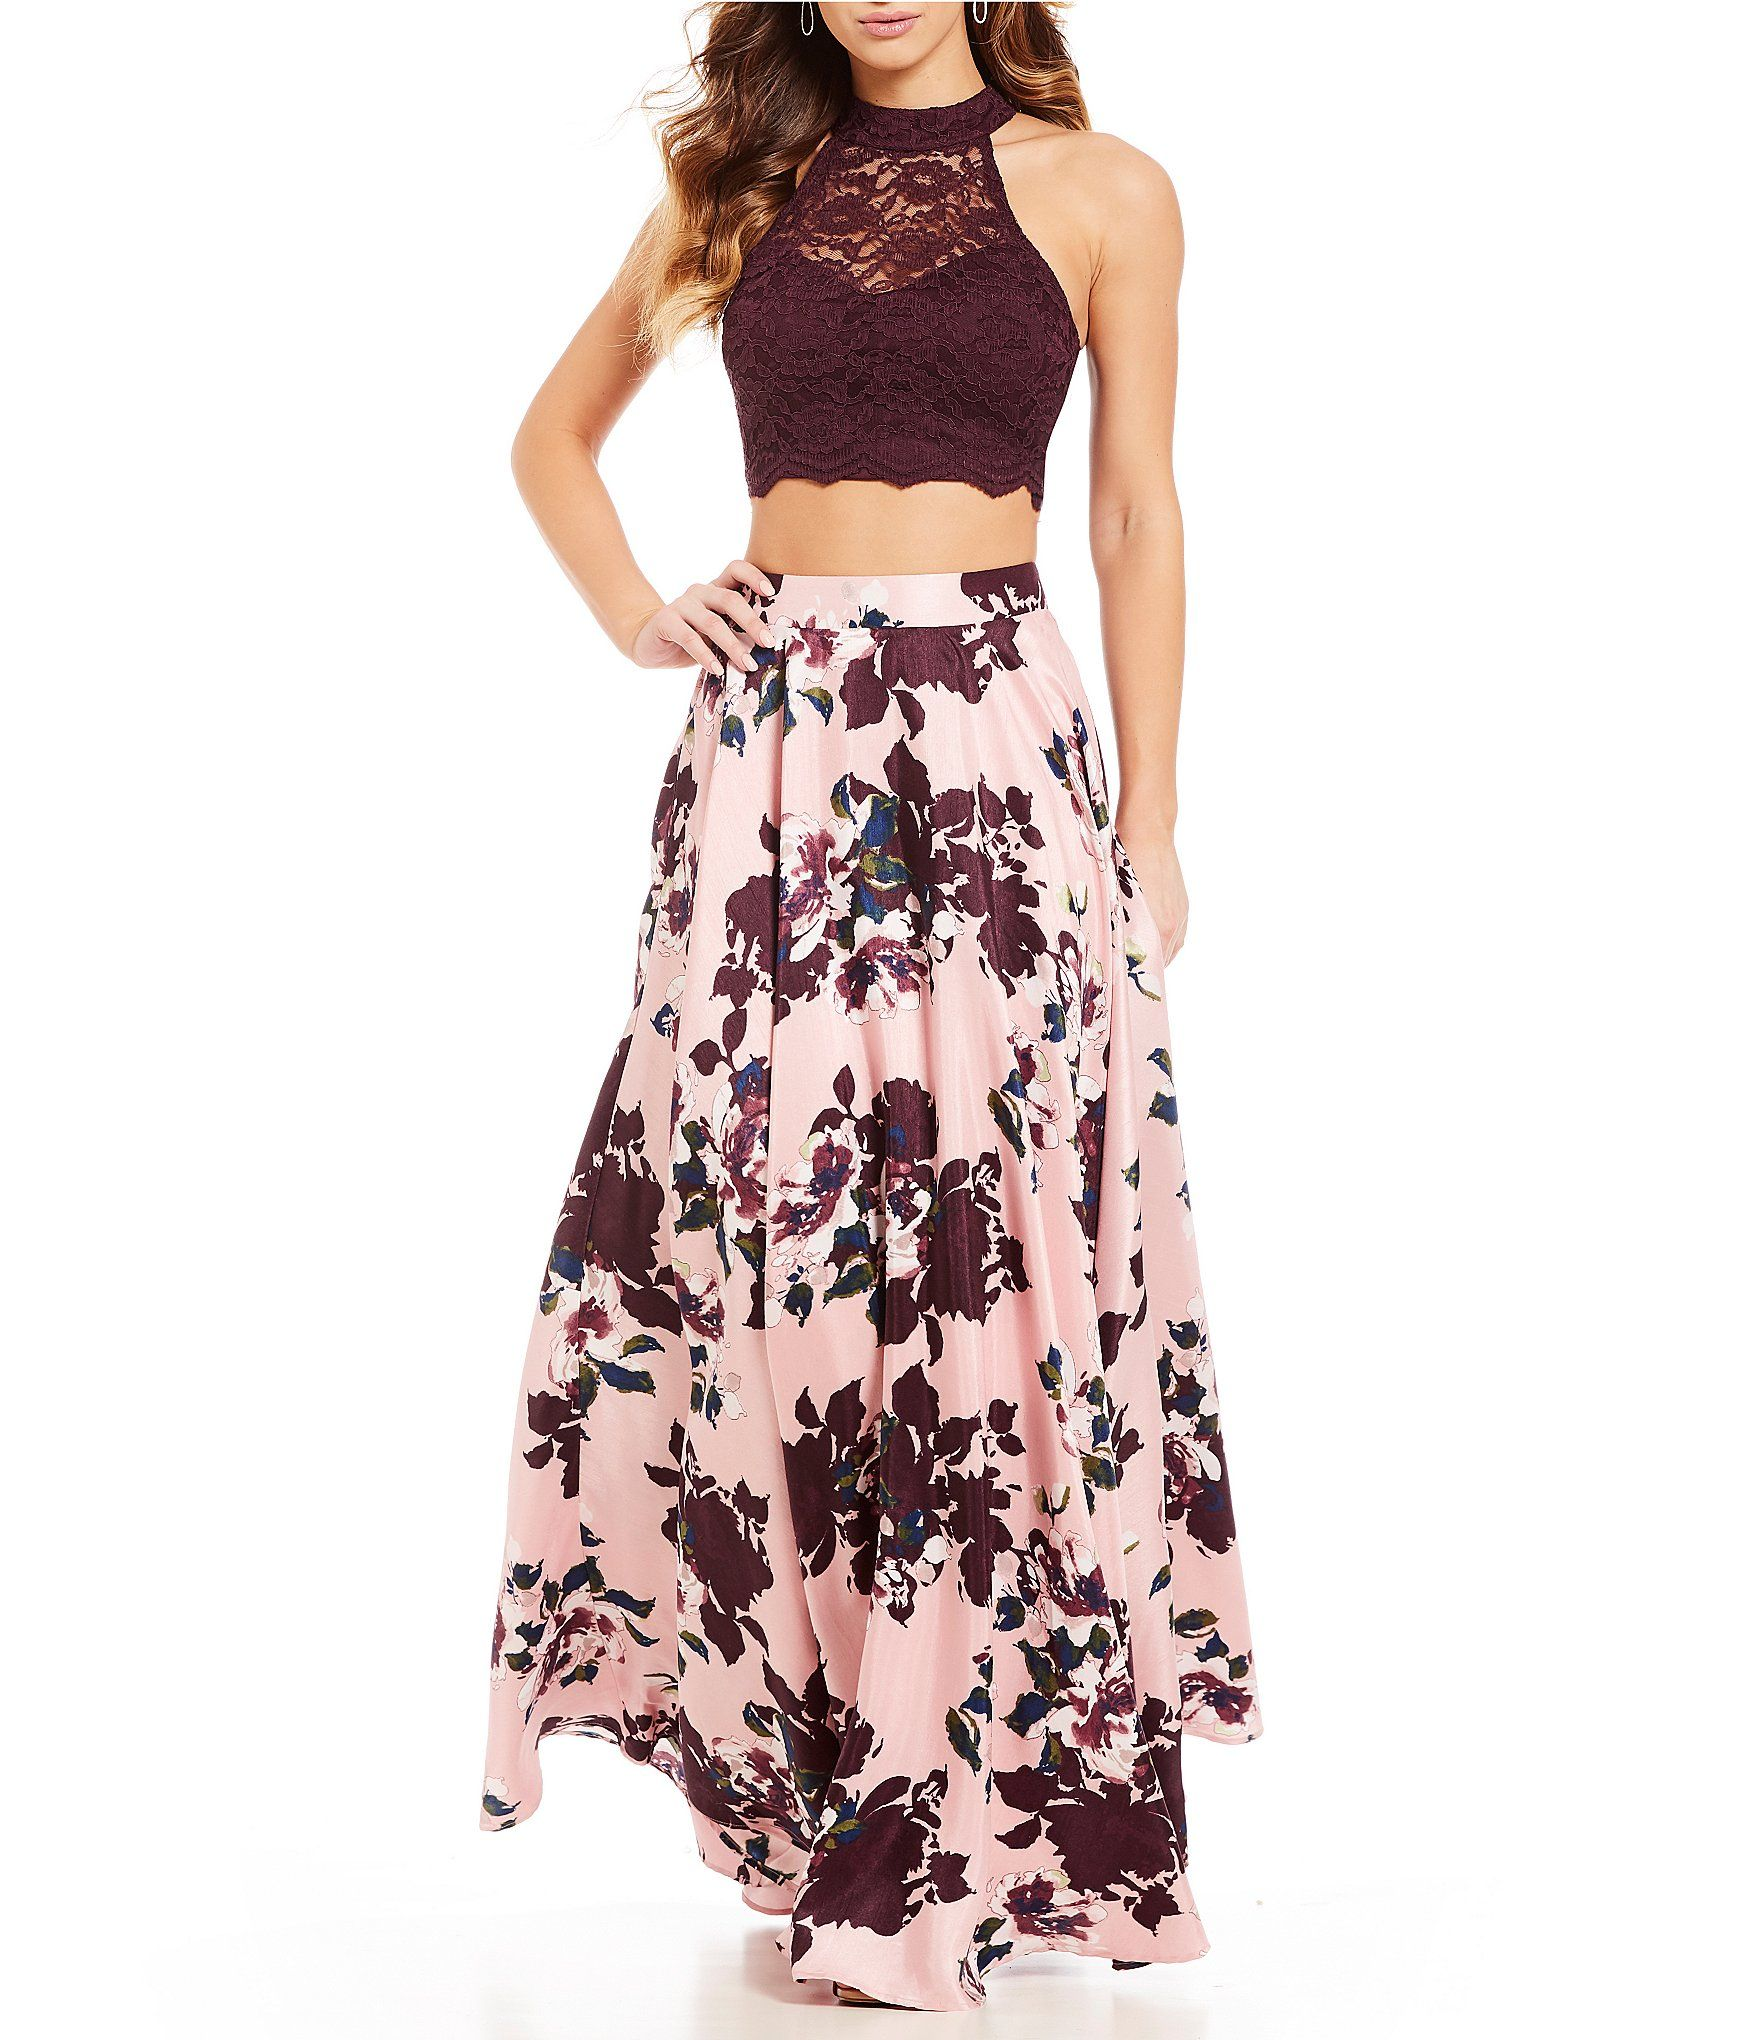 ff83d9b8ba0 Shop for Jodi Kristopher Mock Neck Lace Top with Floral Skirt Two-Piece  Dress at Dillards.com. Visit Dillards.com to find clothing